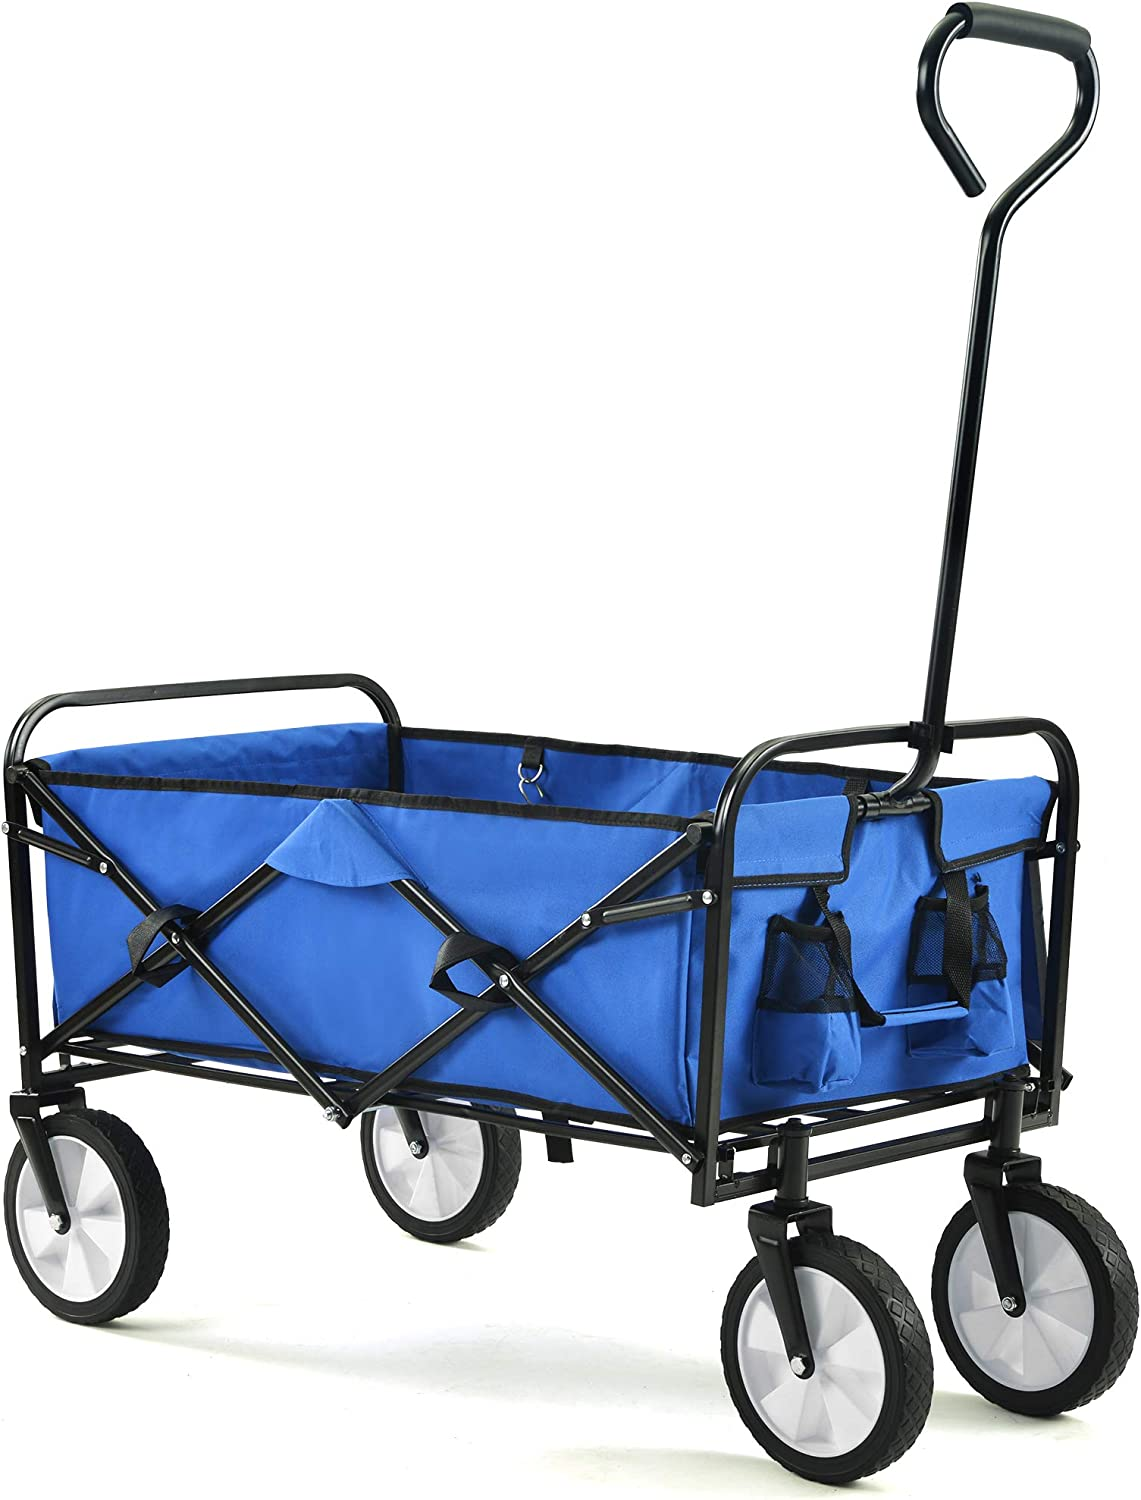 Sincin Folding Wagons with Wheels Collapsible Compact Outdoor Garden Camping Cart Removable Fabric, Blue (Blue)